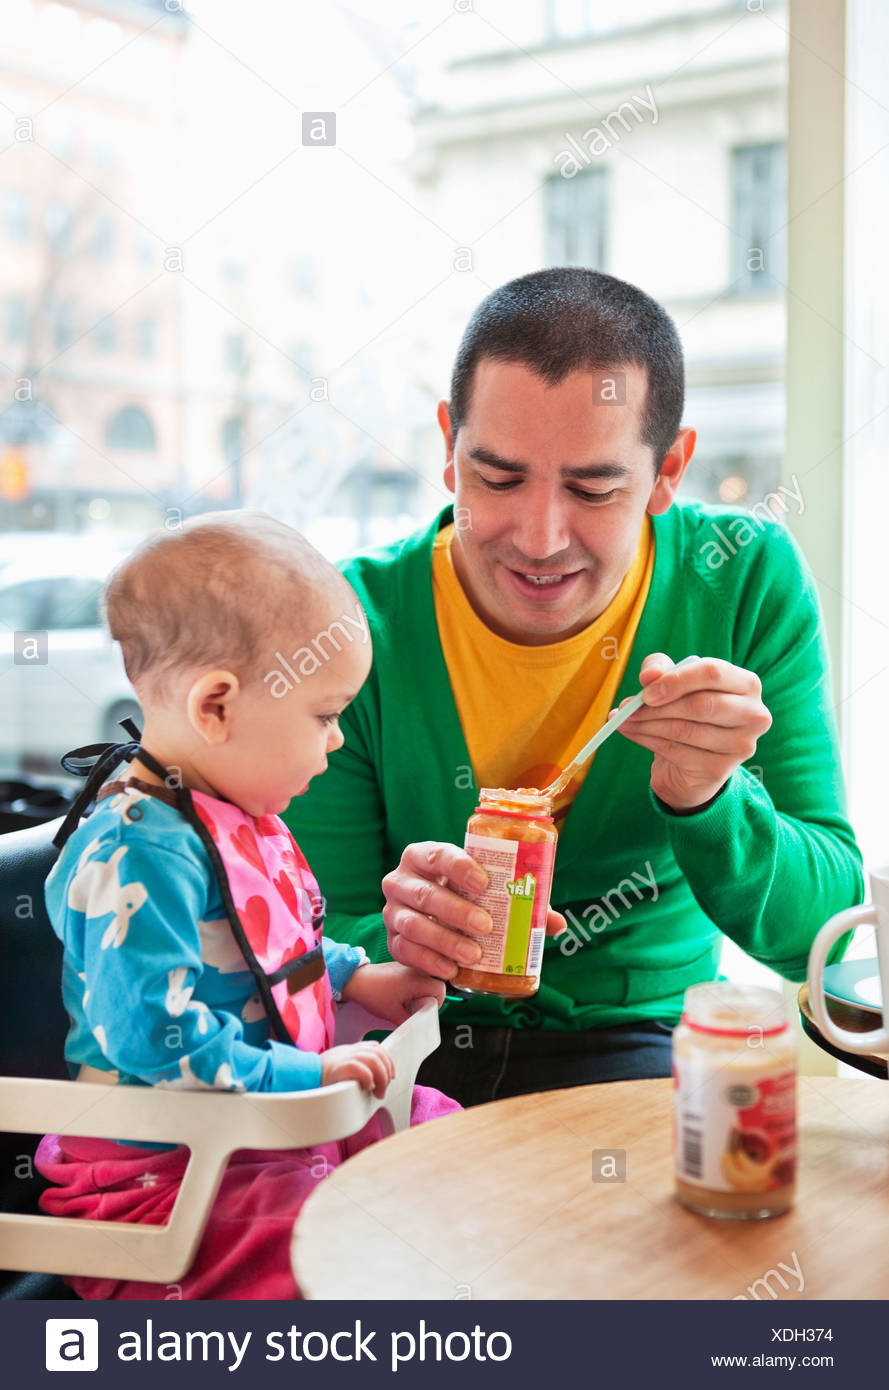 Father feeding daughter (0-11 months) - Stock Image